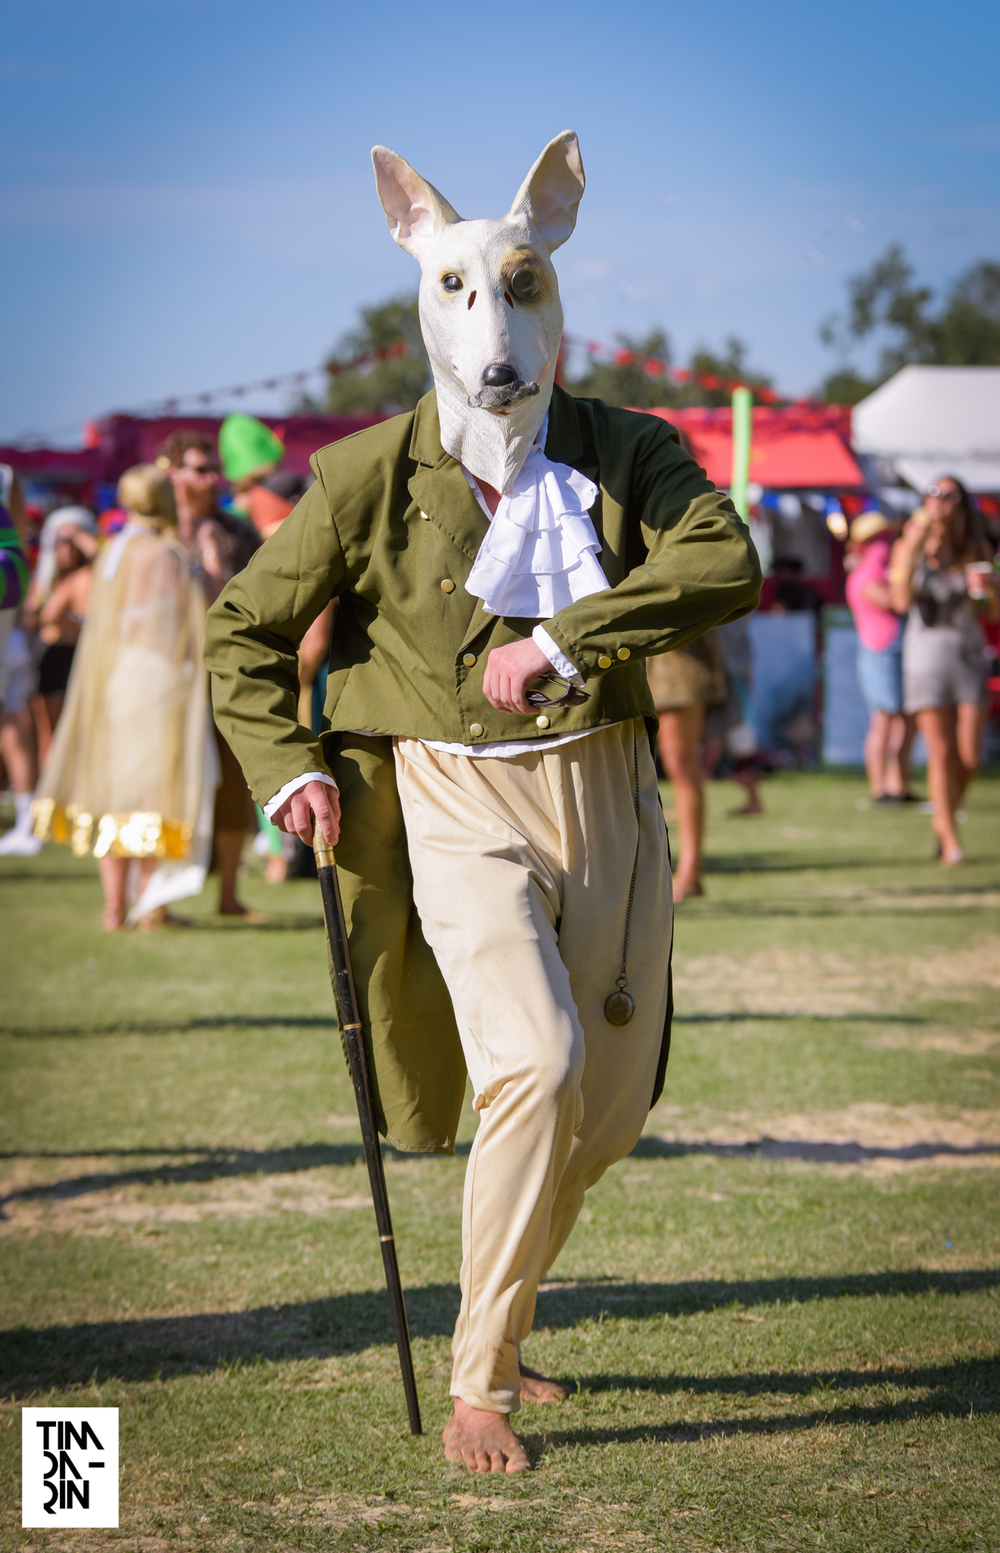 Secret Garden Festival 2015 by Tim daRin - 692 - _DSC2939.jpg